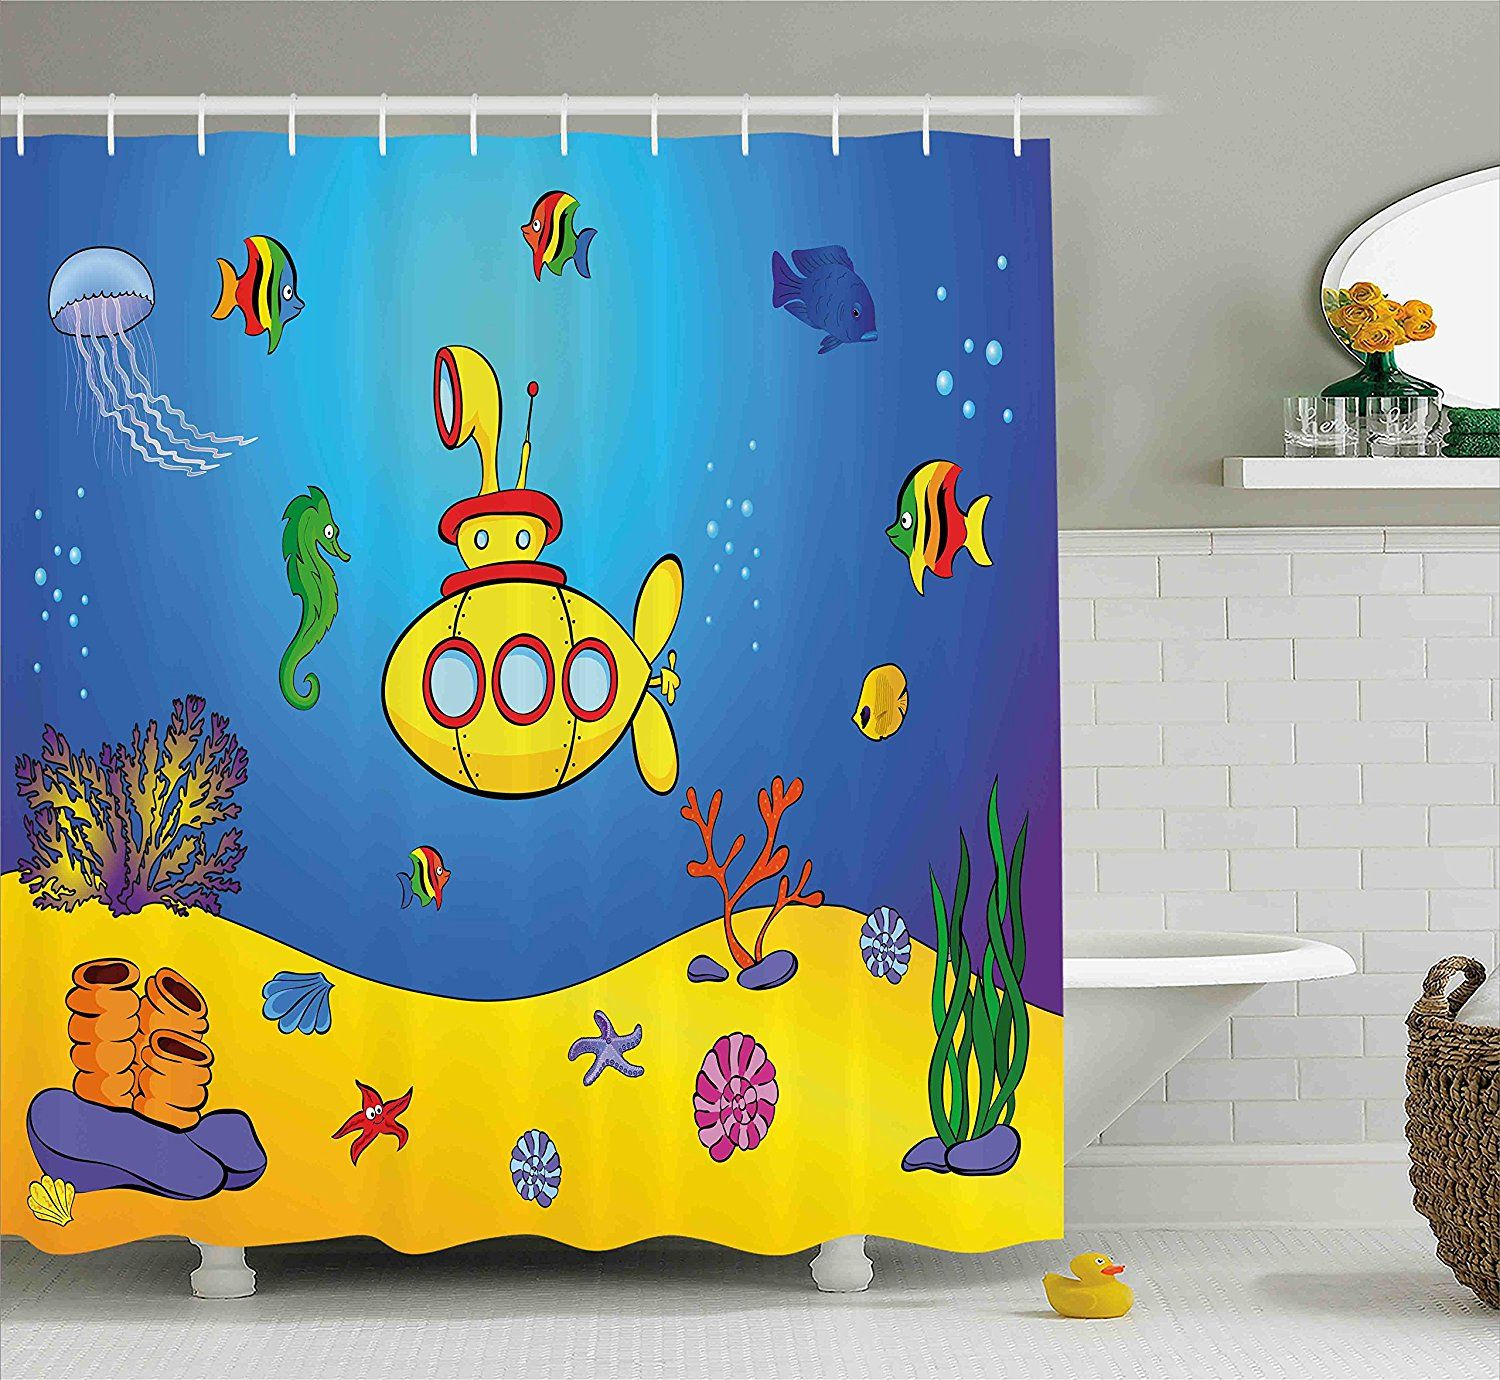 Kids Ocean Bathroom Decor Beatles Yellow Submarine Shower Curtain For The Bathroom